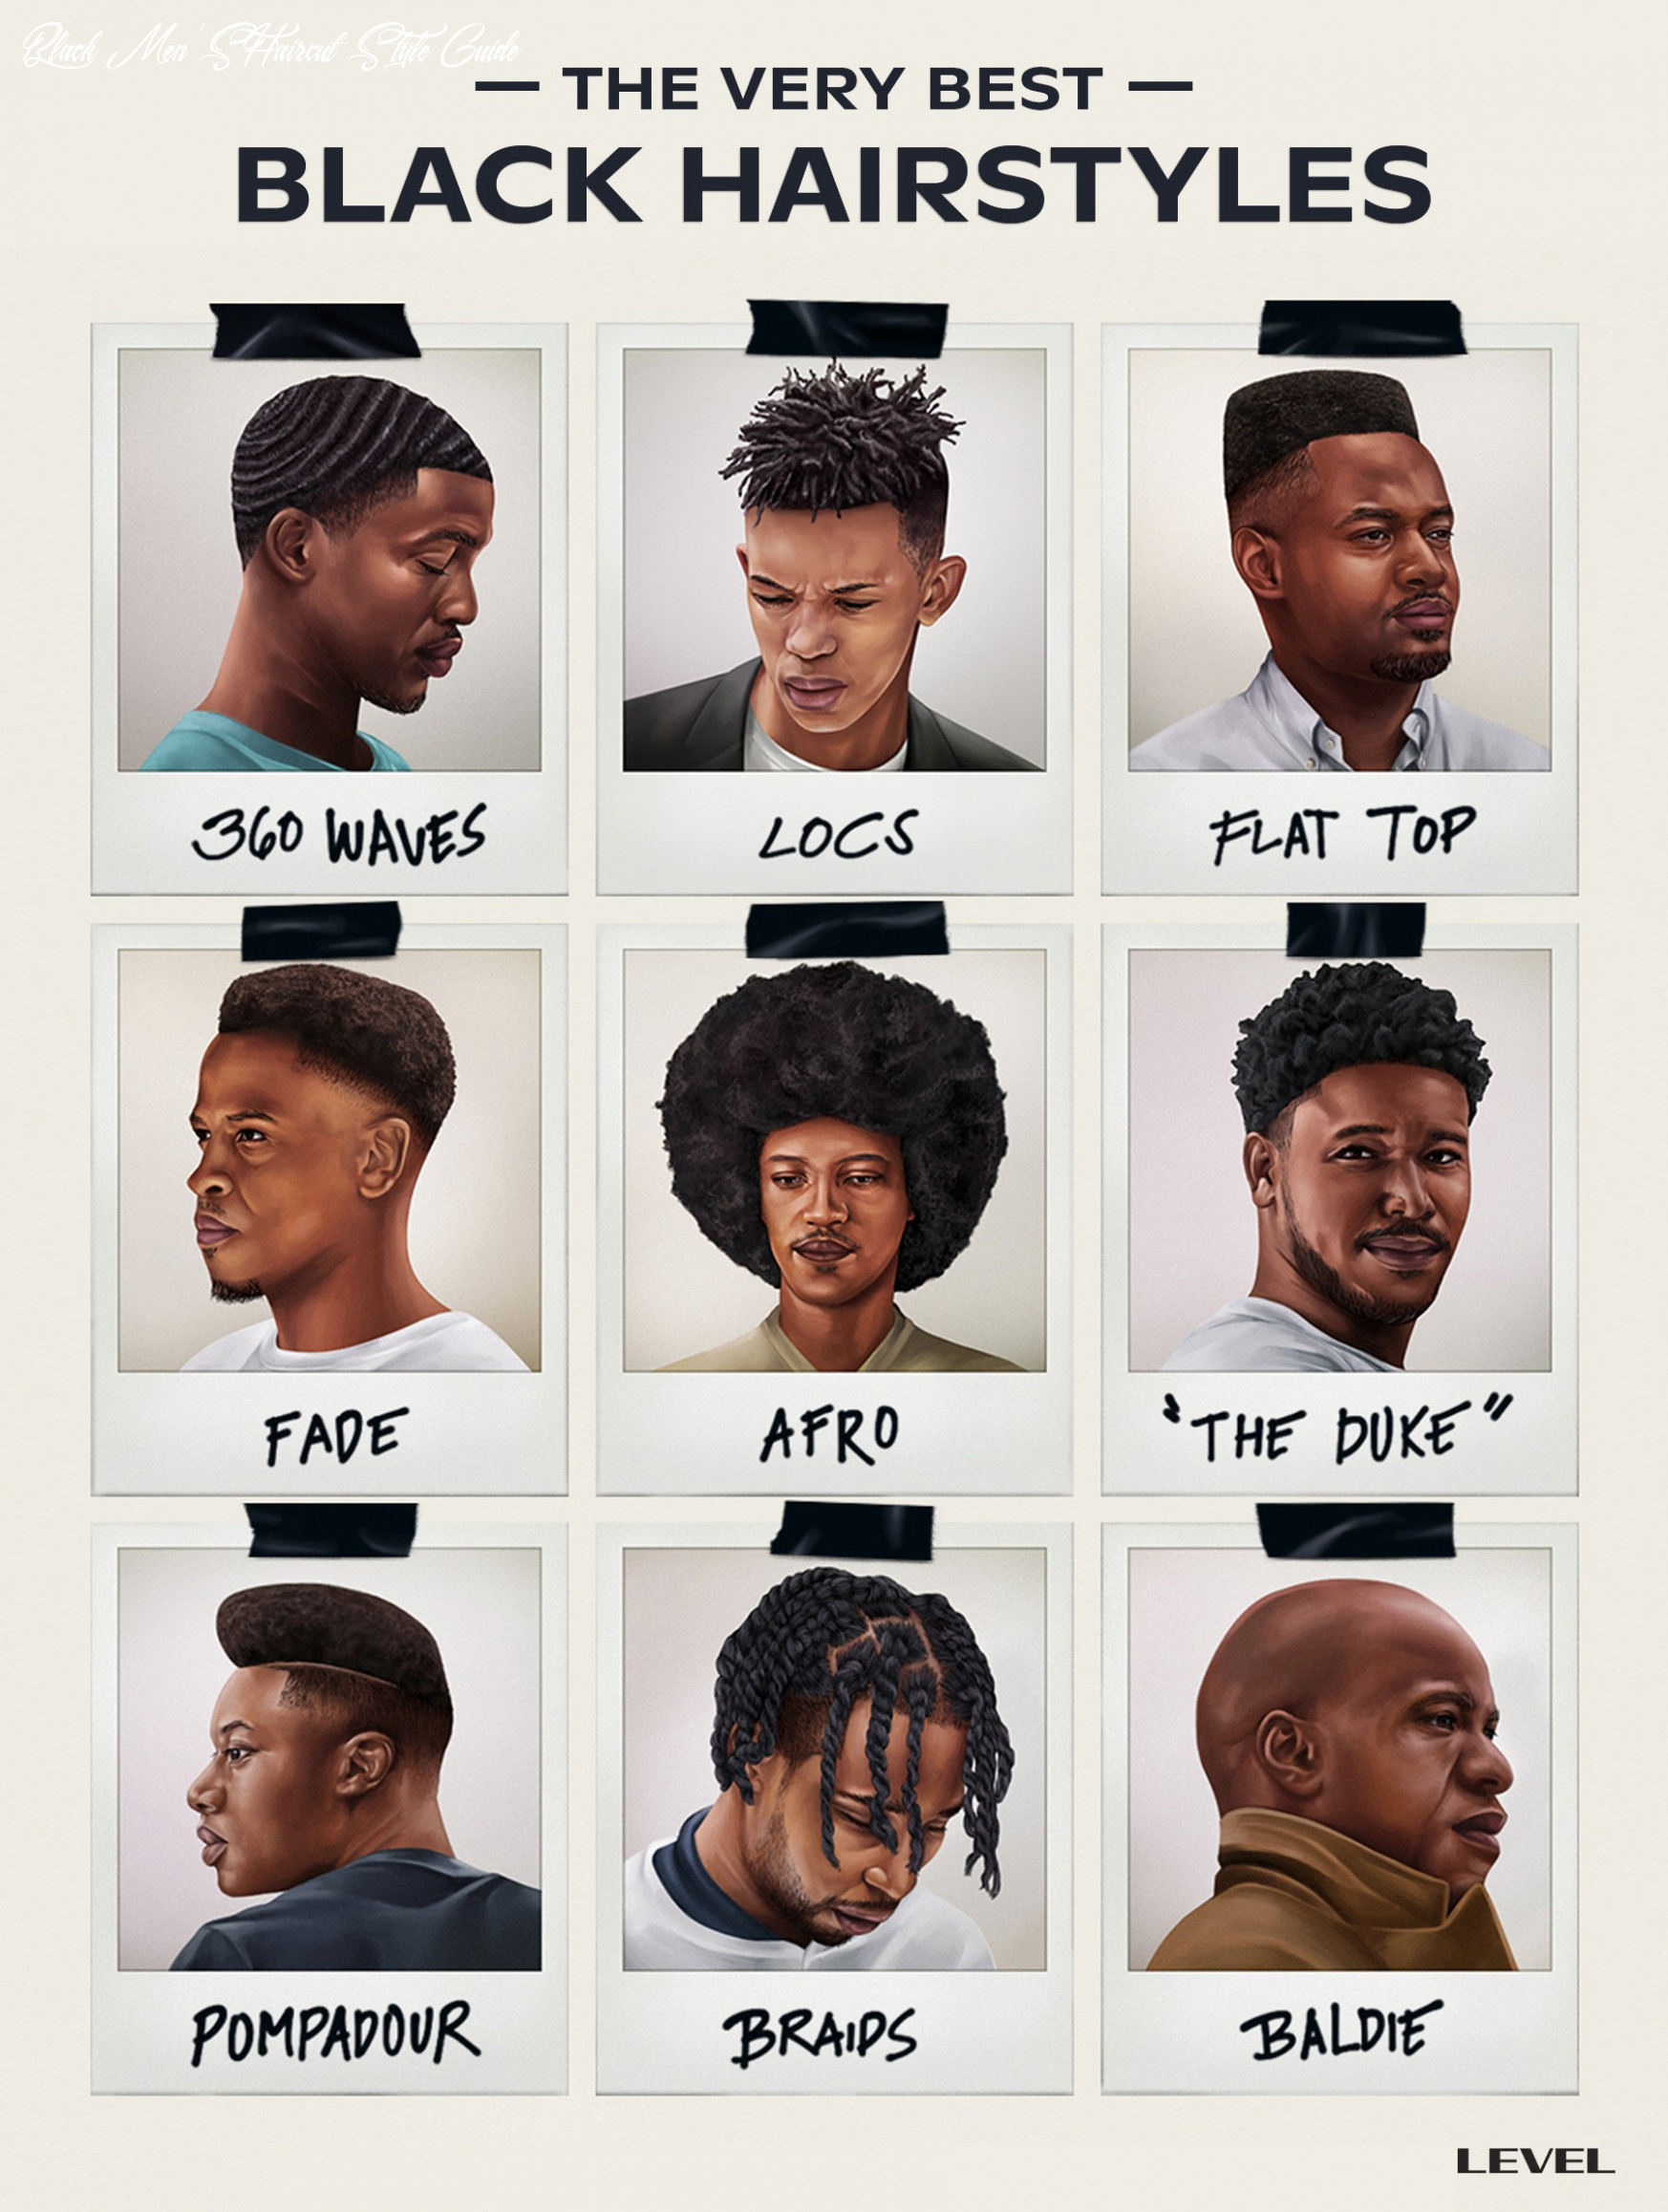 The Top Black Men's Hair Styles, Ranked | LEVEL